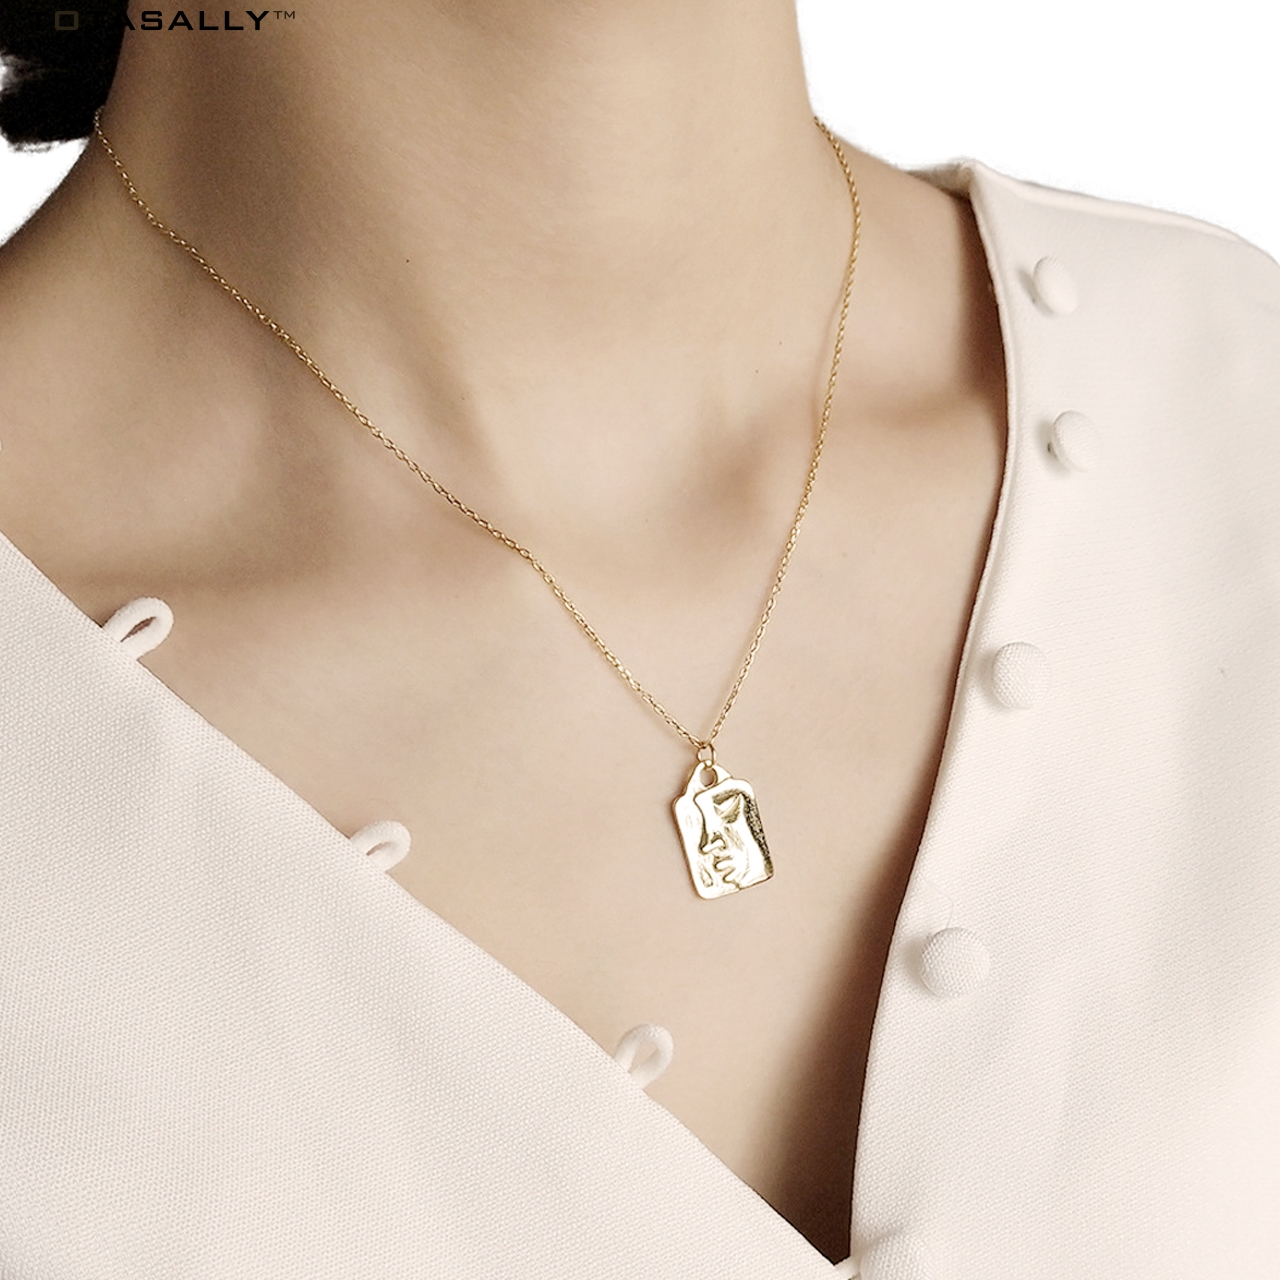 TOTASALLY S925 Sterling Silver designed artistic crying face Chinese characters carved medallion Pendant necklace For Women retro carved metal pendant necklace for women